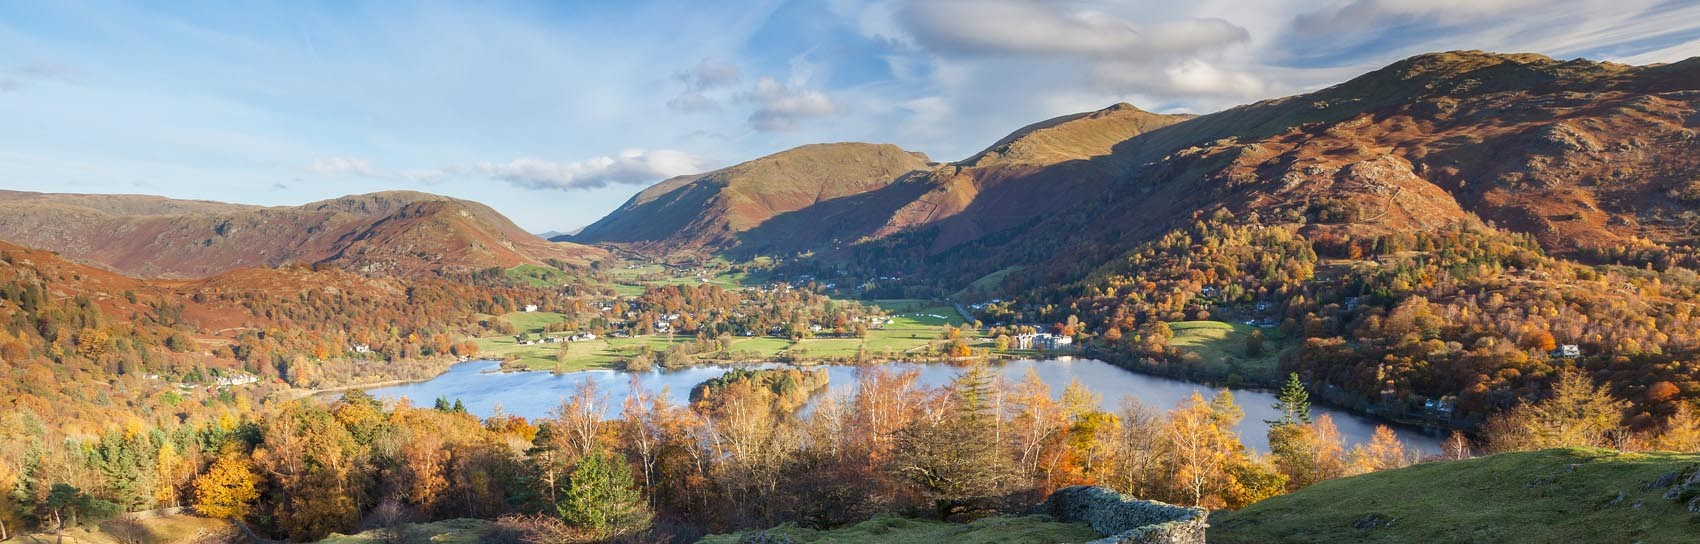 The view over Grasmere in the Lake District. Photograph by JAMES LINDSAY